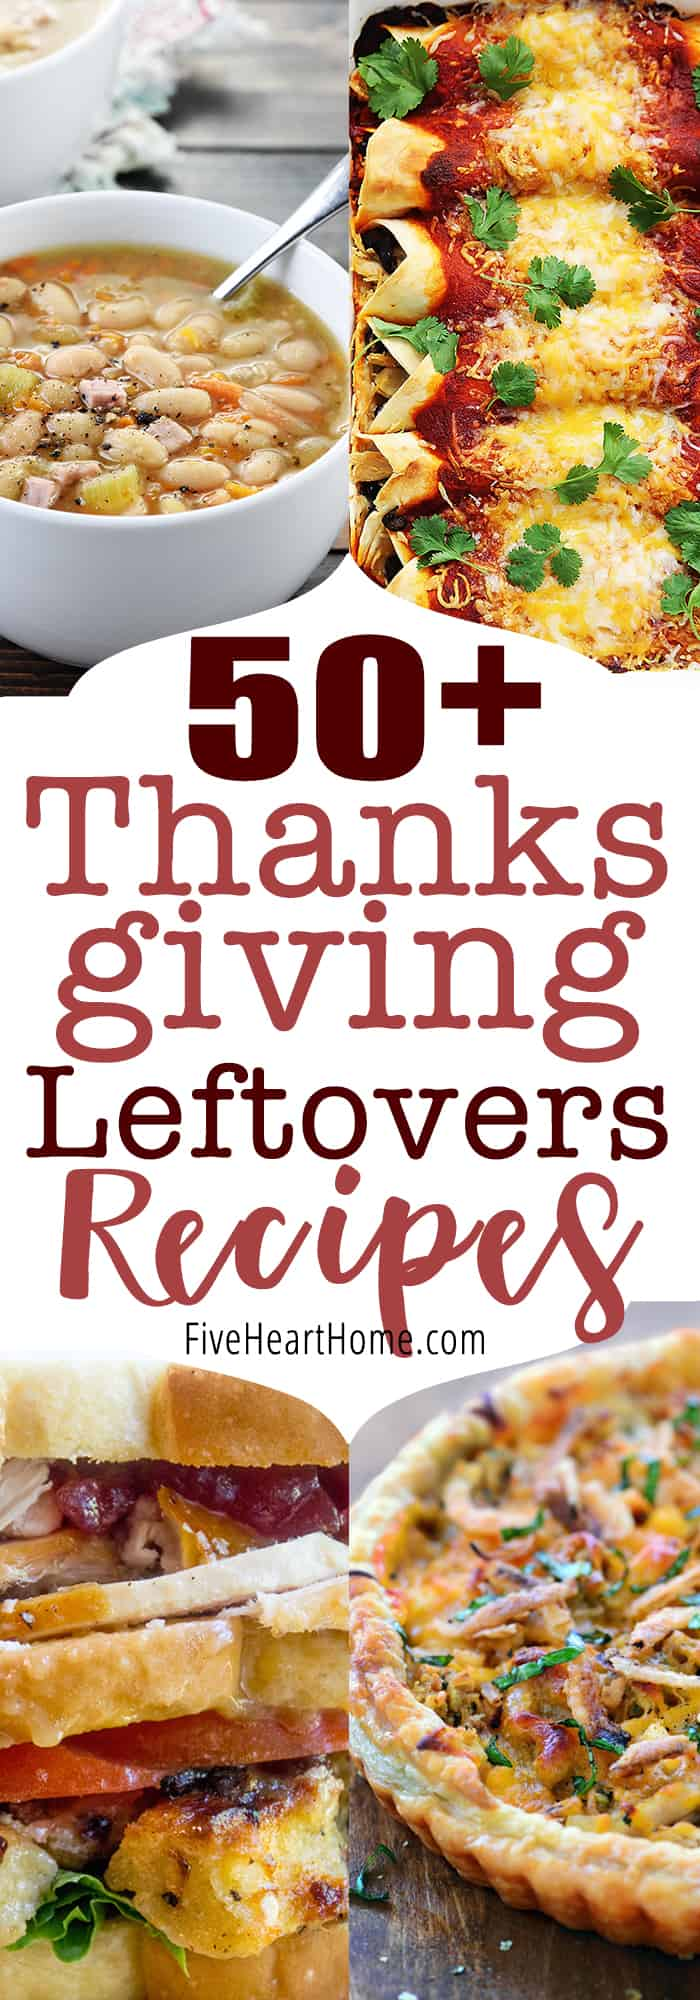 50+ Thanksgiving Leftovers Recipes ~ enjoy this round-up of recipes for using up the leftovers from Thanksgiving, Christmas, and other holiday meals, from turkey to ham to veggies and more! | FiveHeartHome.com